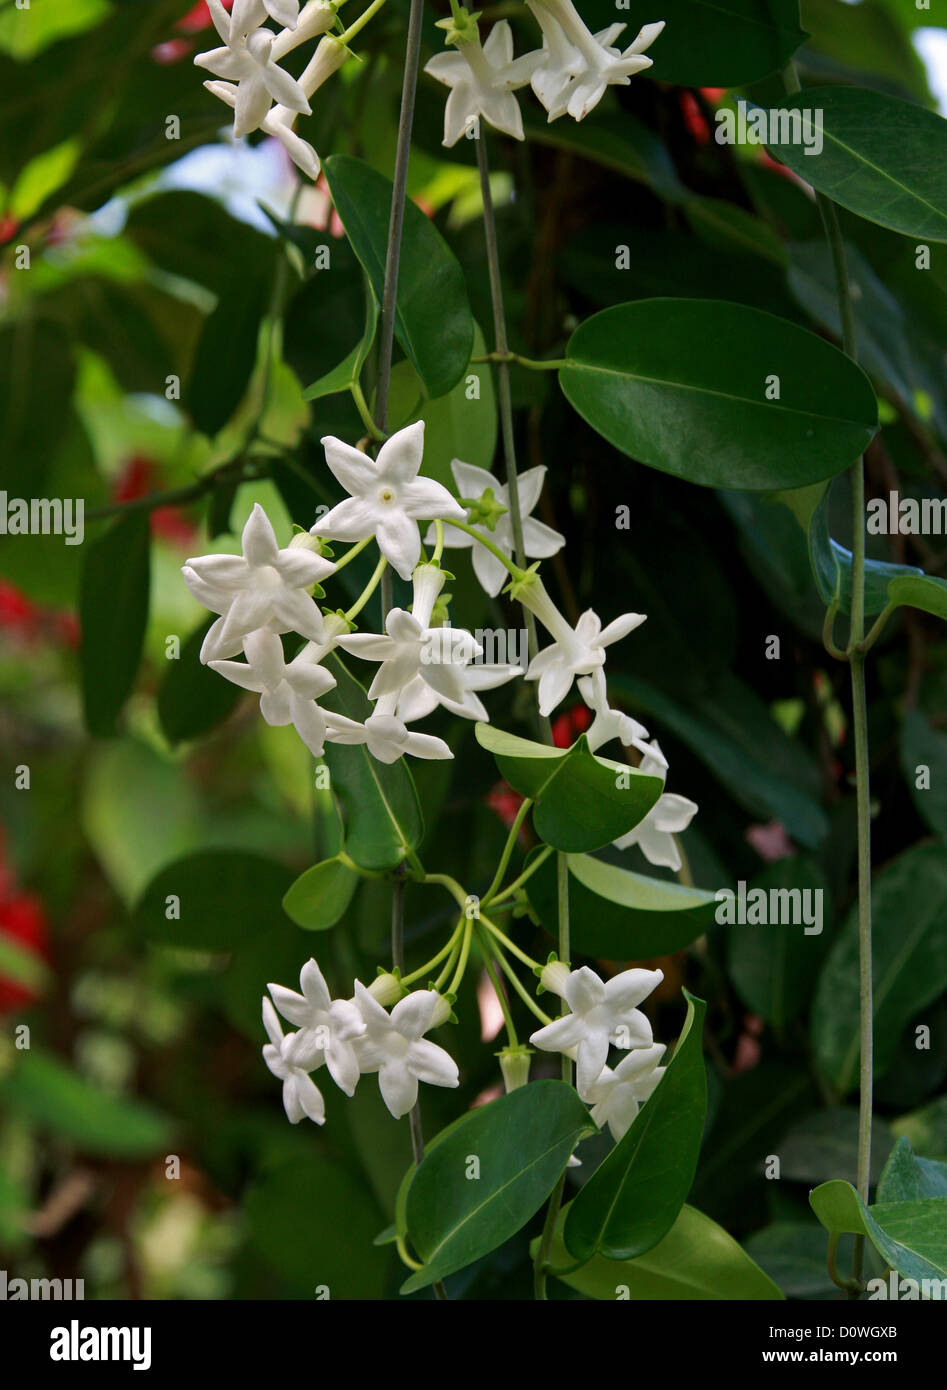 Stephanotis Floribunda Stock Photos Stephanotis Floribunda Stock